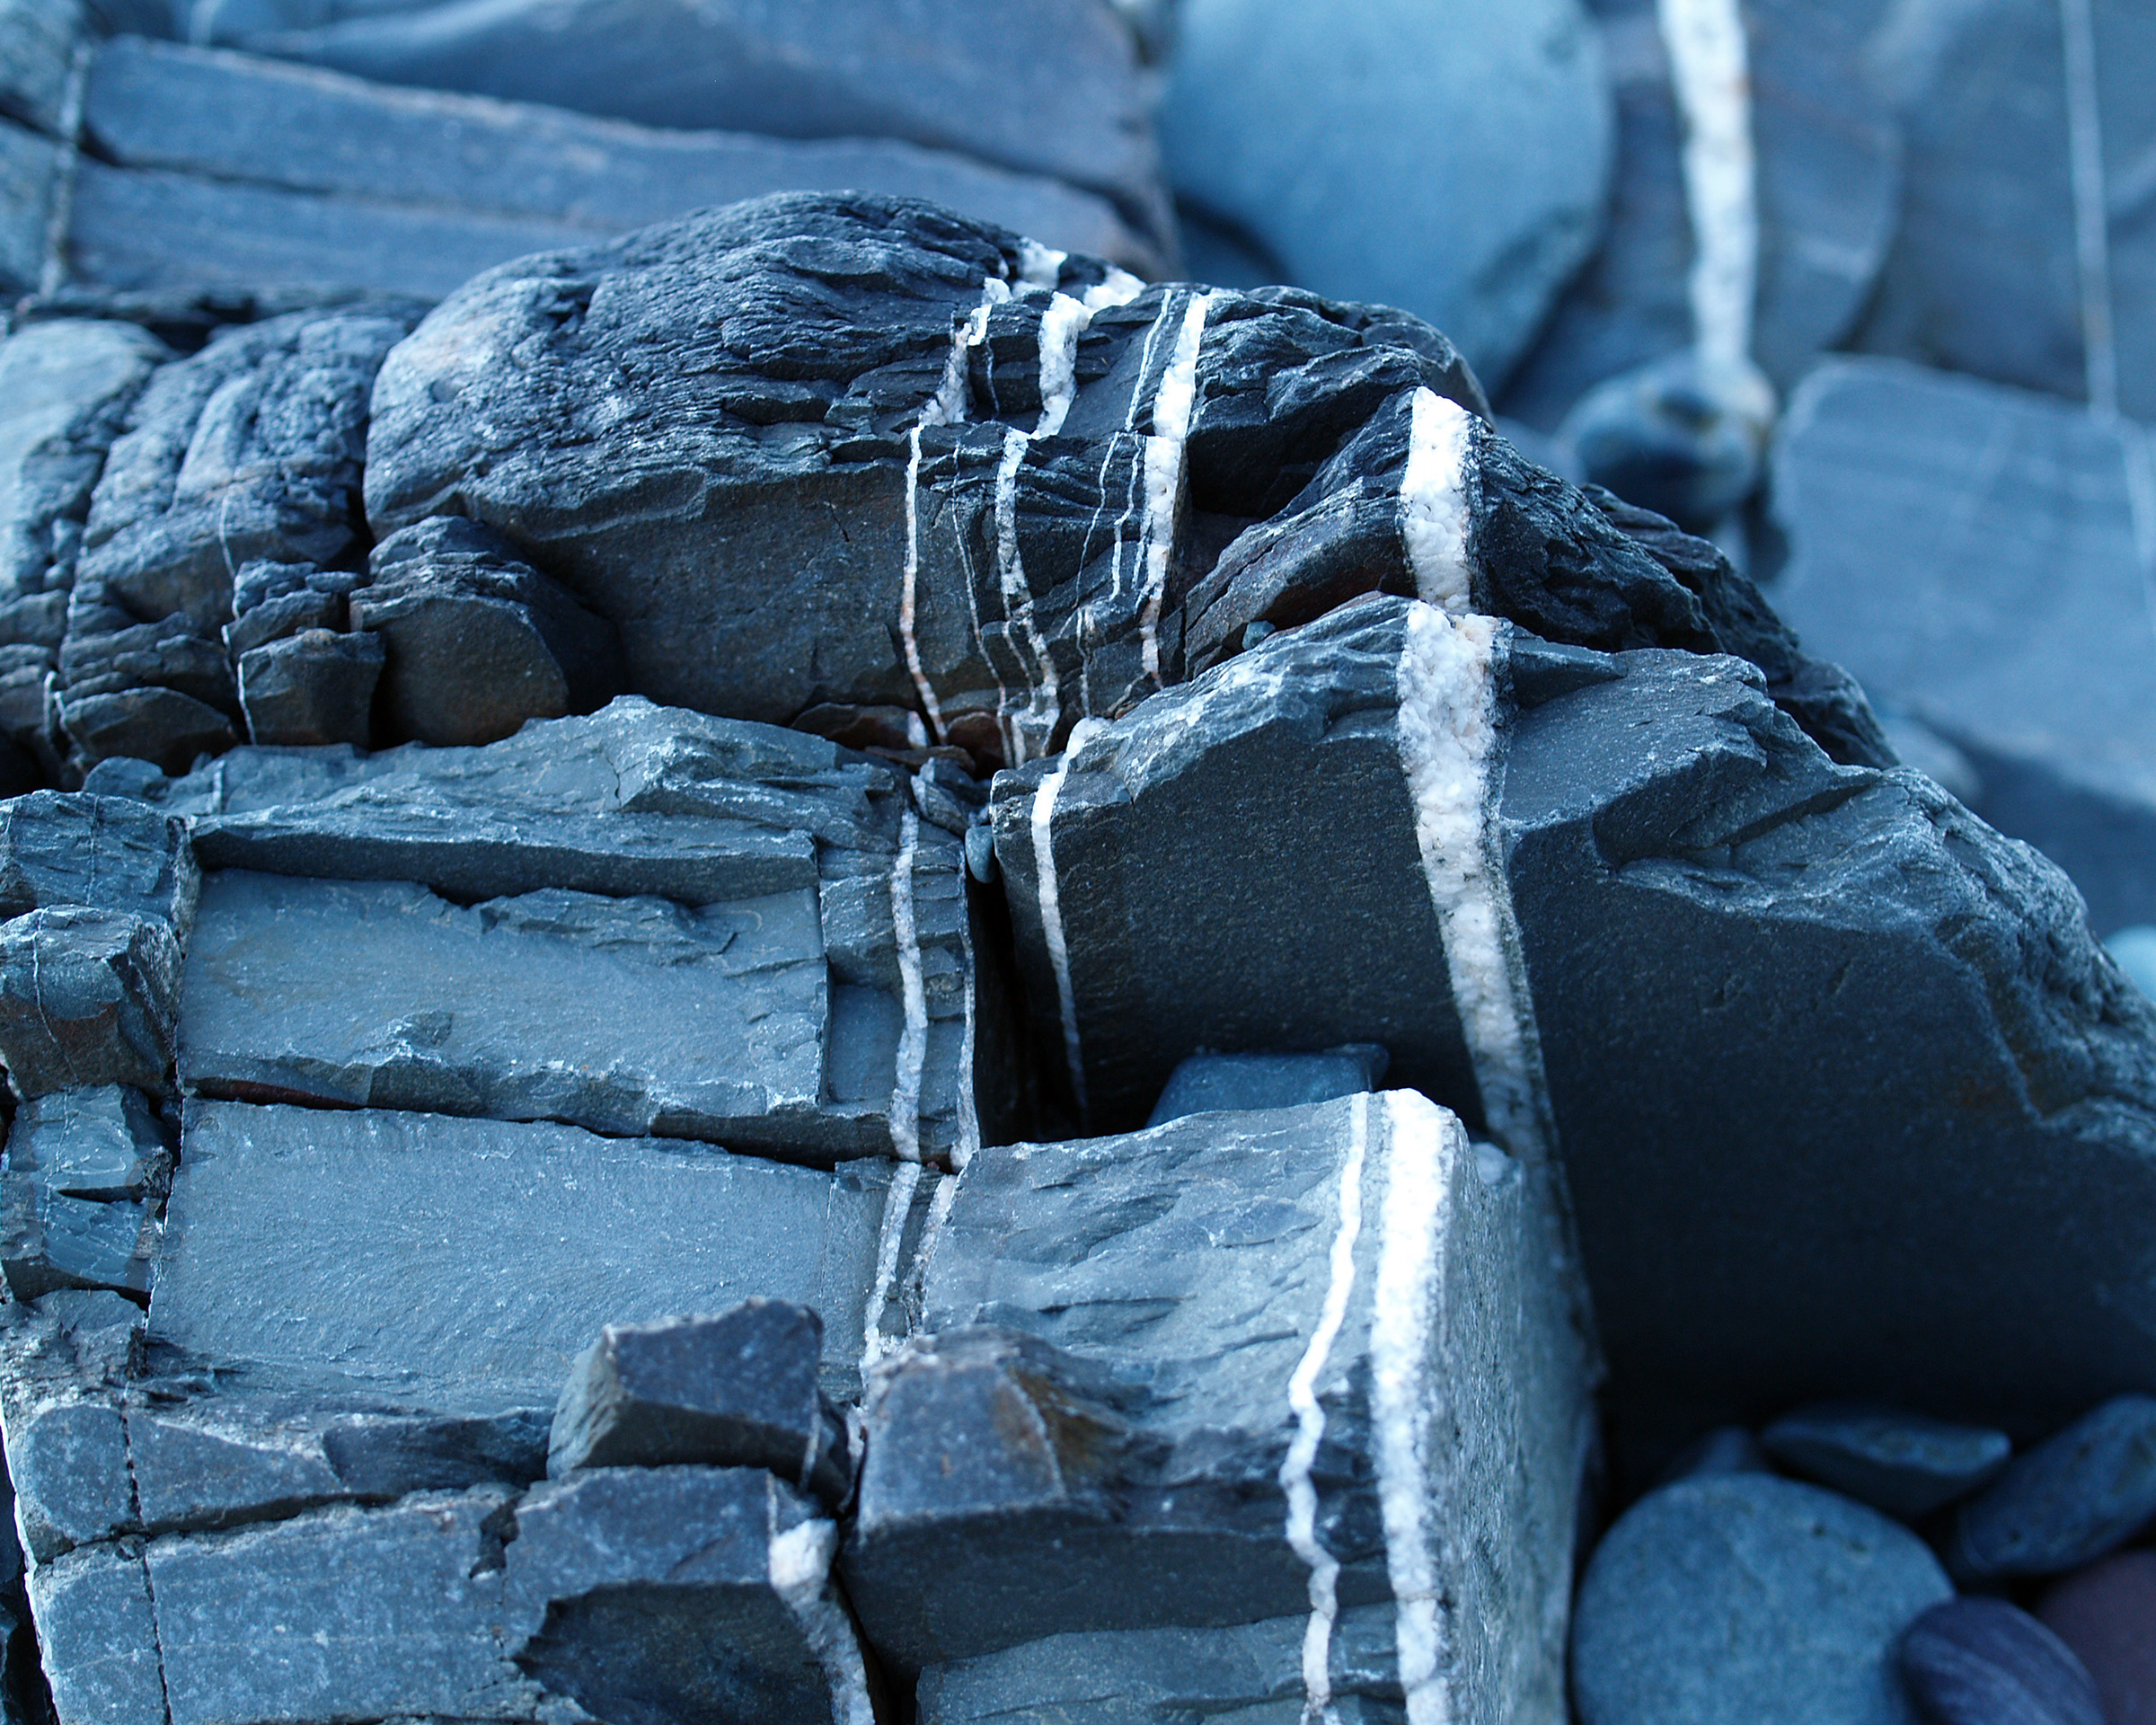 Rock, Abstract, Rough, Wall, Unusual, HQ Photo